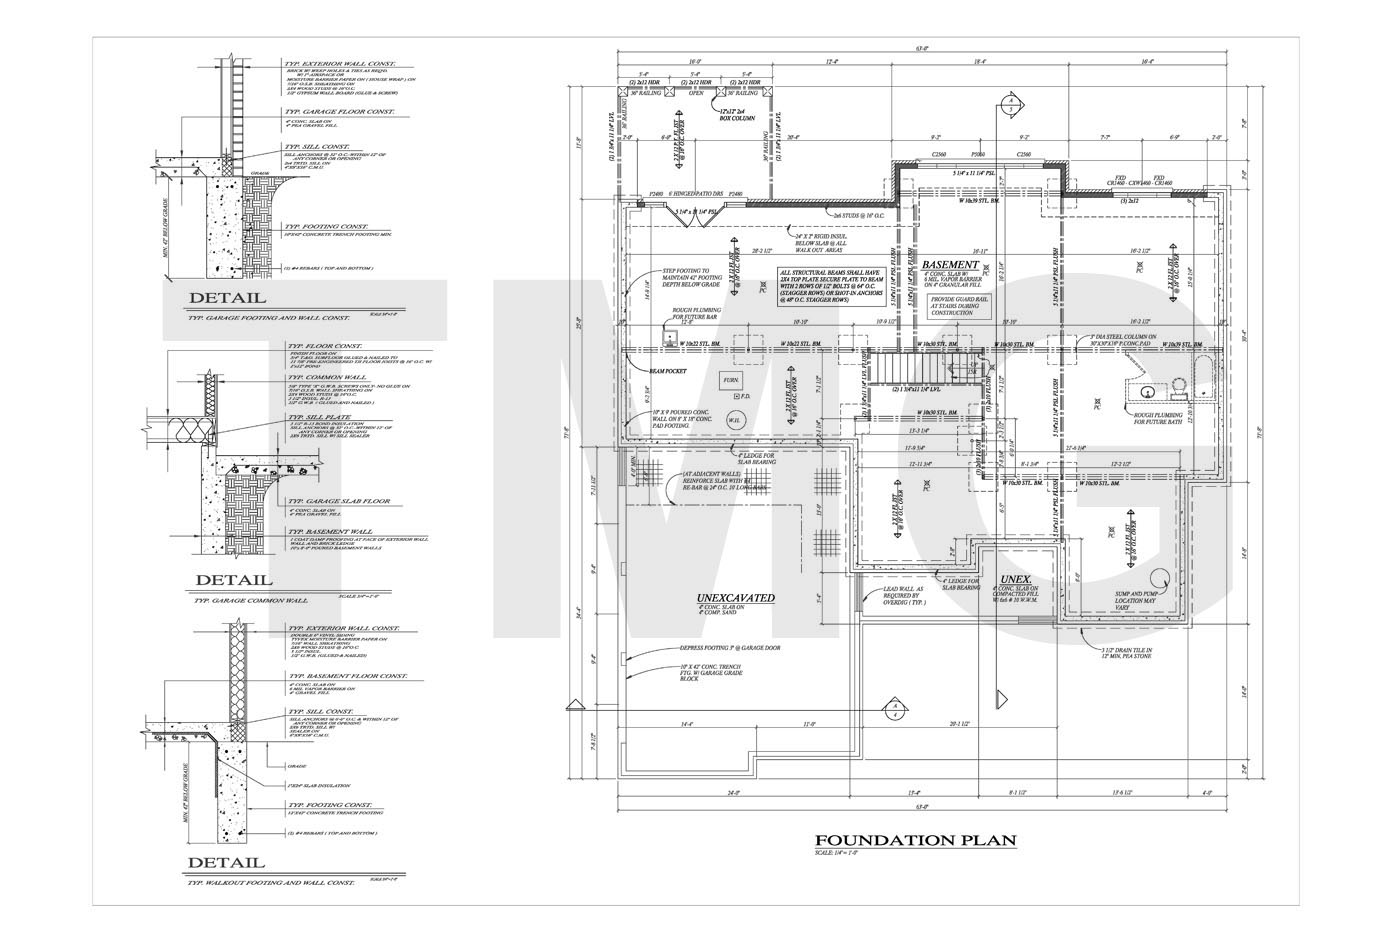 House plans drafting the magnum group tmg india for House foundation plan